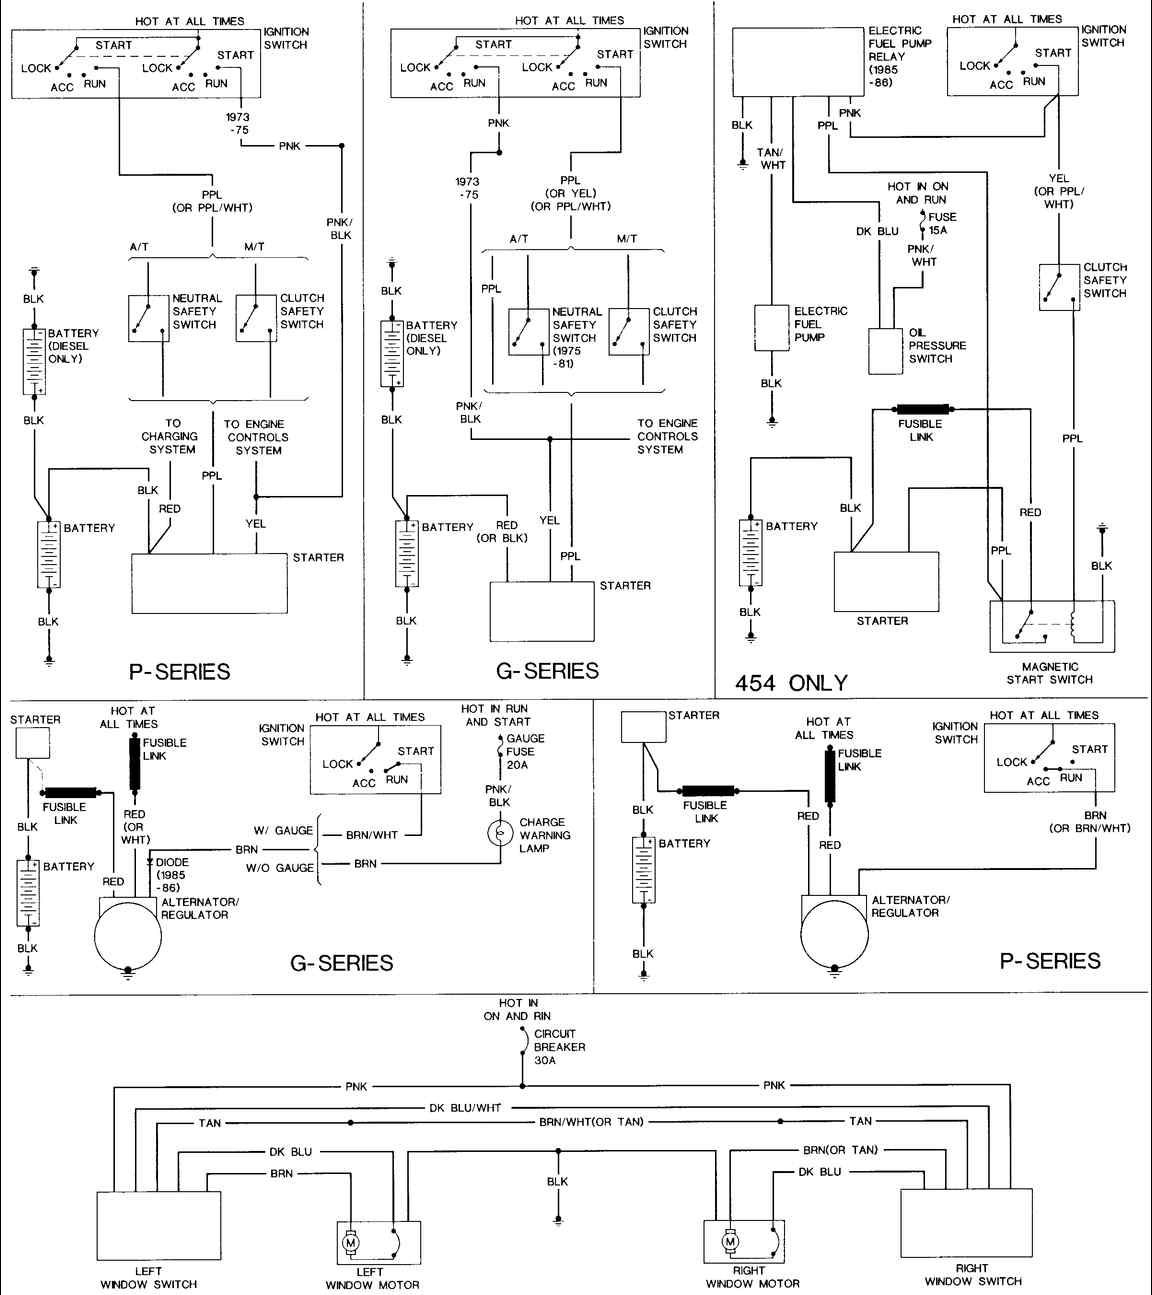 0c73623a181dc376dbb4777e2029d285 85 chevy truck wiring diagram 85 chevy van the steering column wiring diagram for 1983 chevy pickup at n-0.co